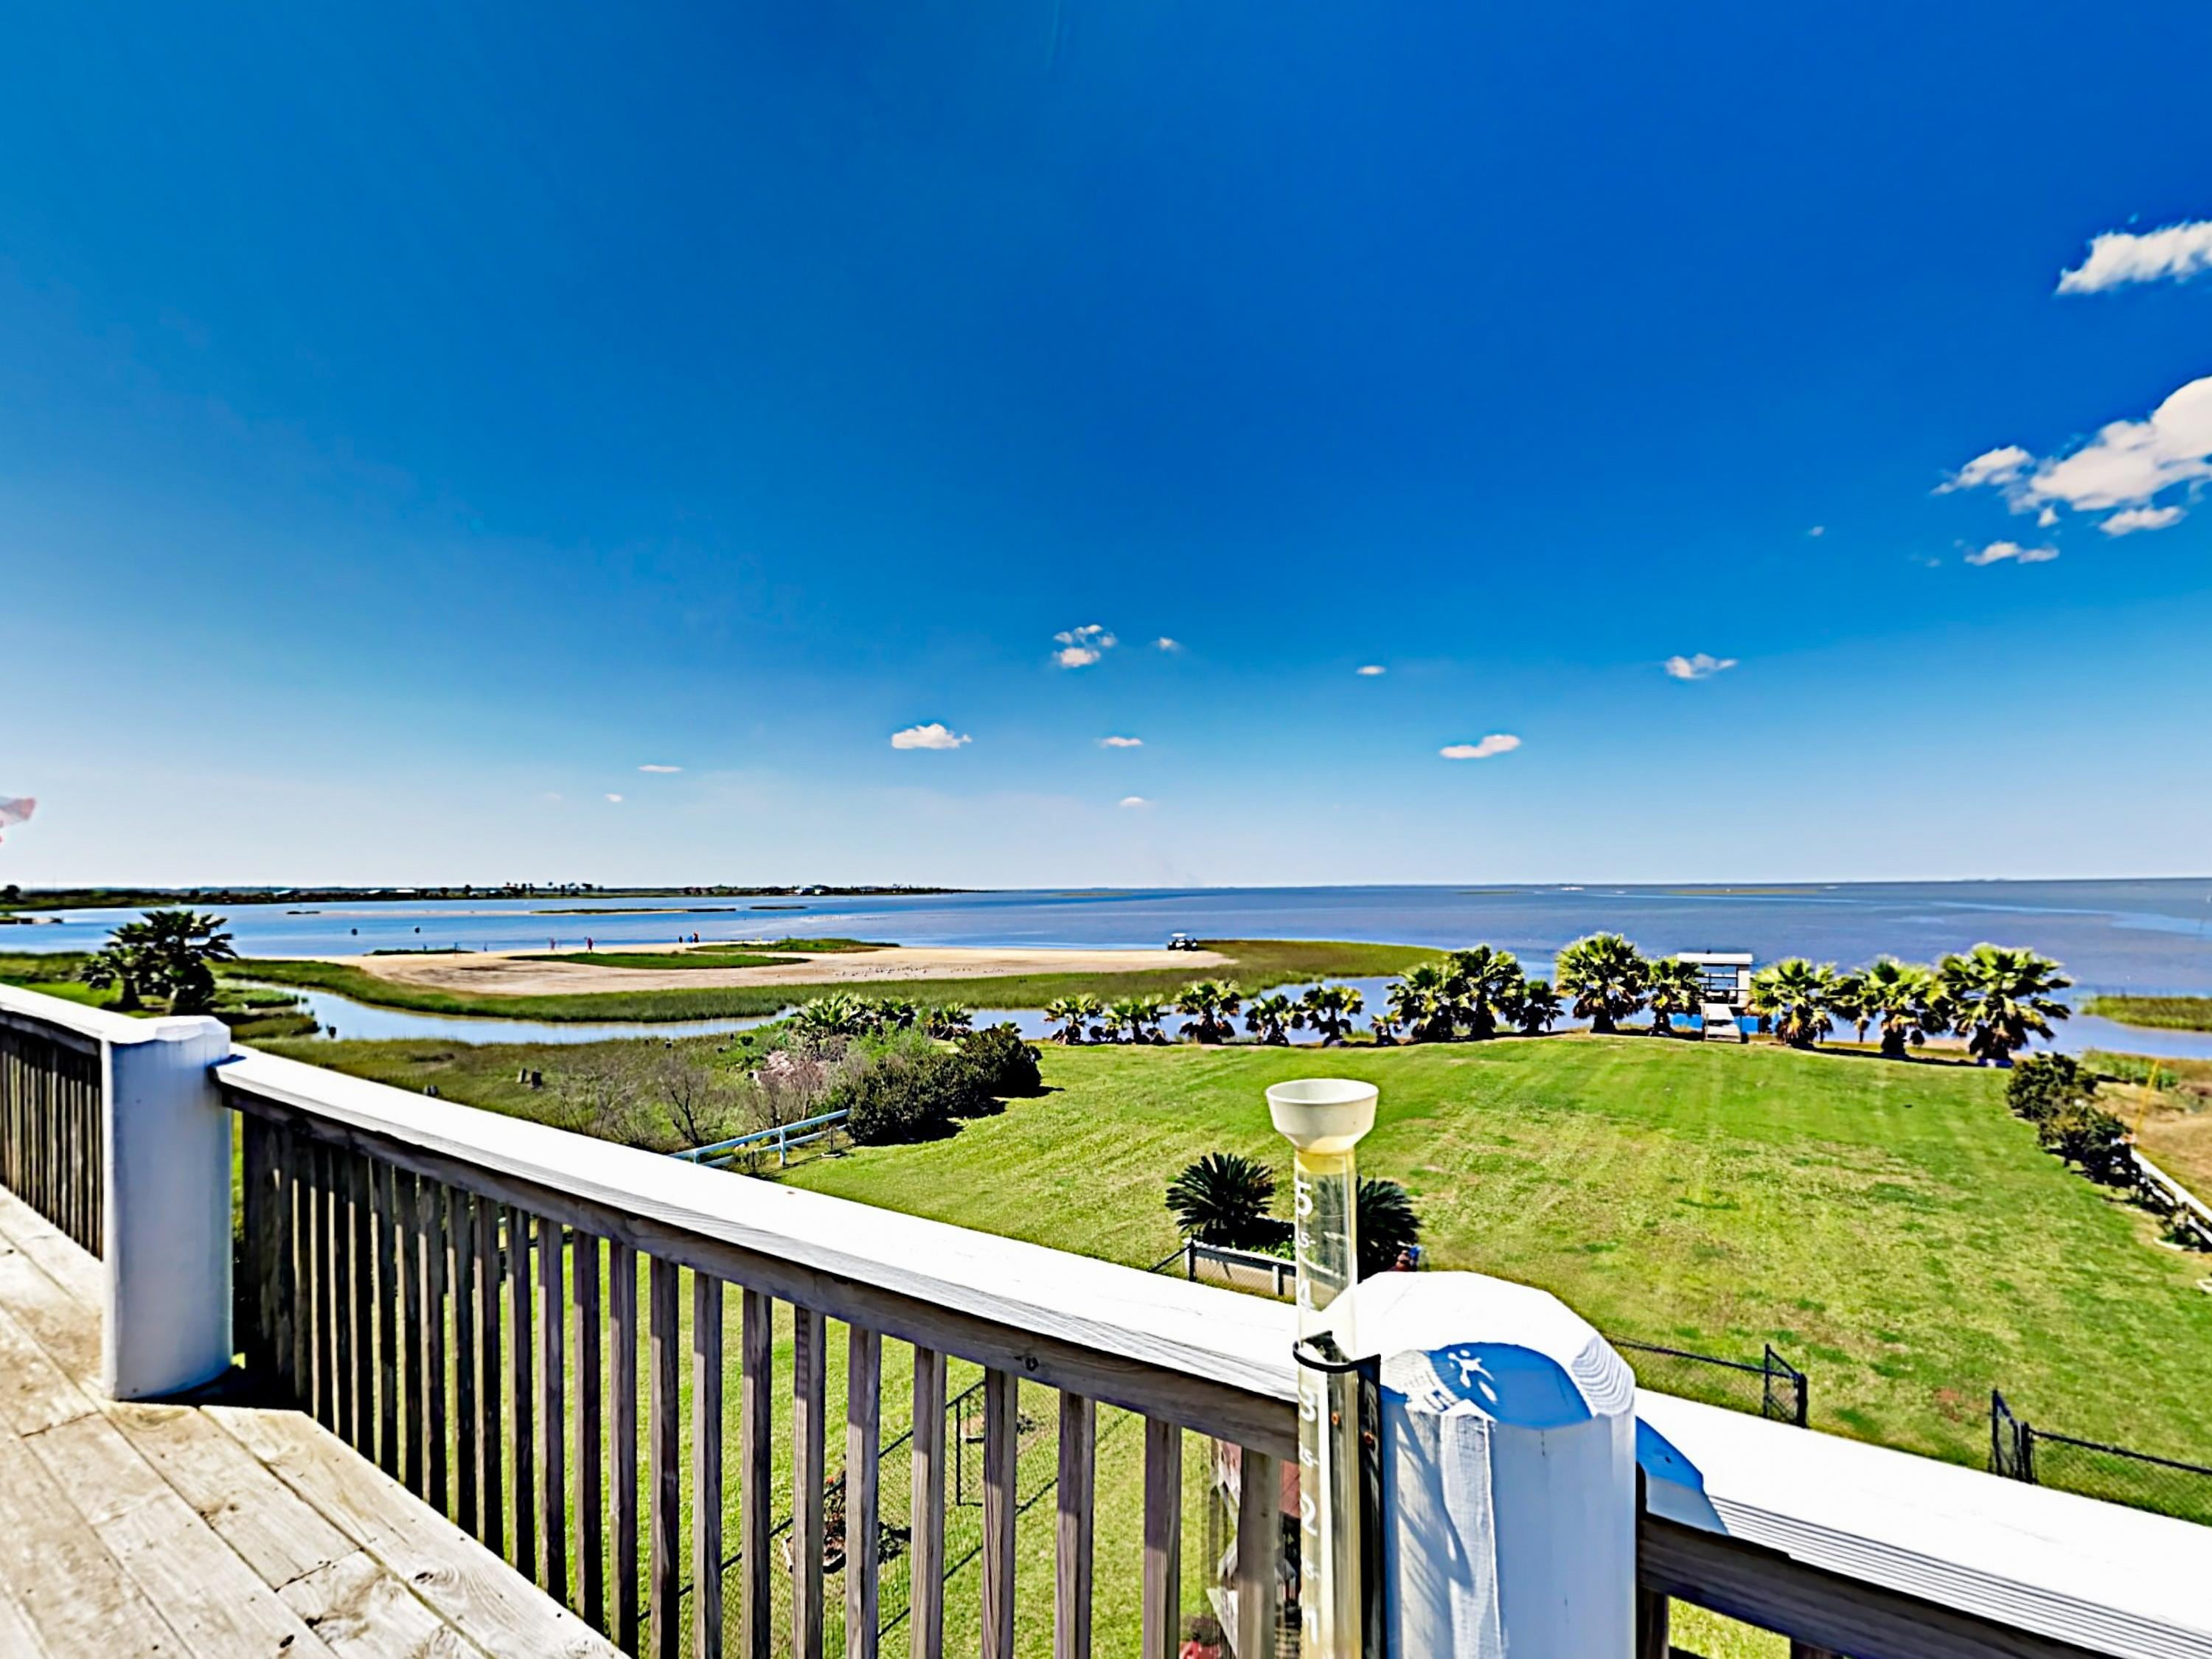 Welcome to Gilchrist! This waterfront home is professionally managed by TurnKey Vacation Rentals.